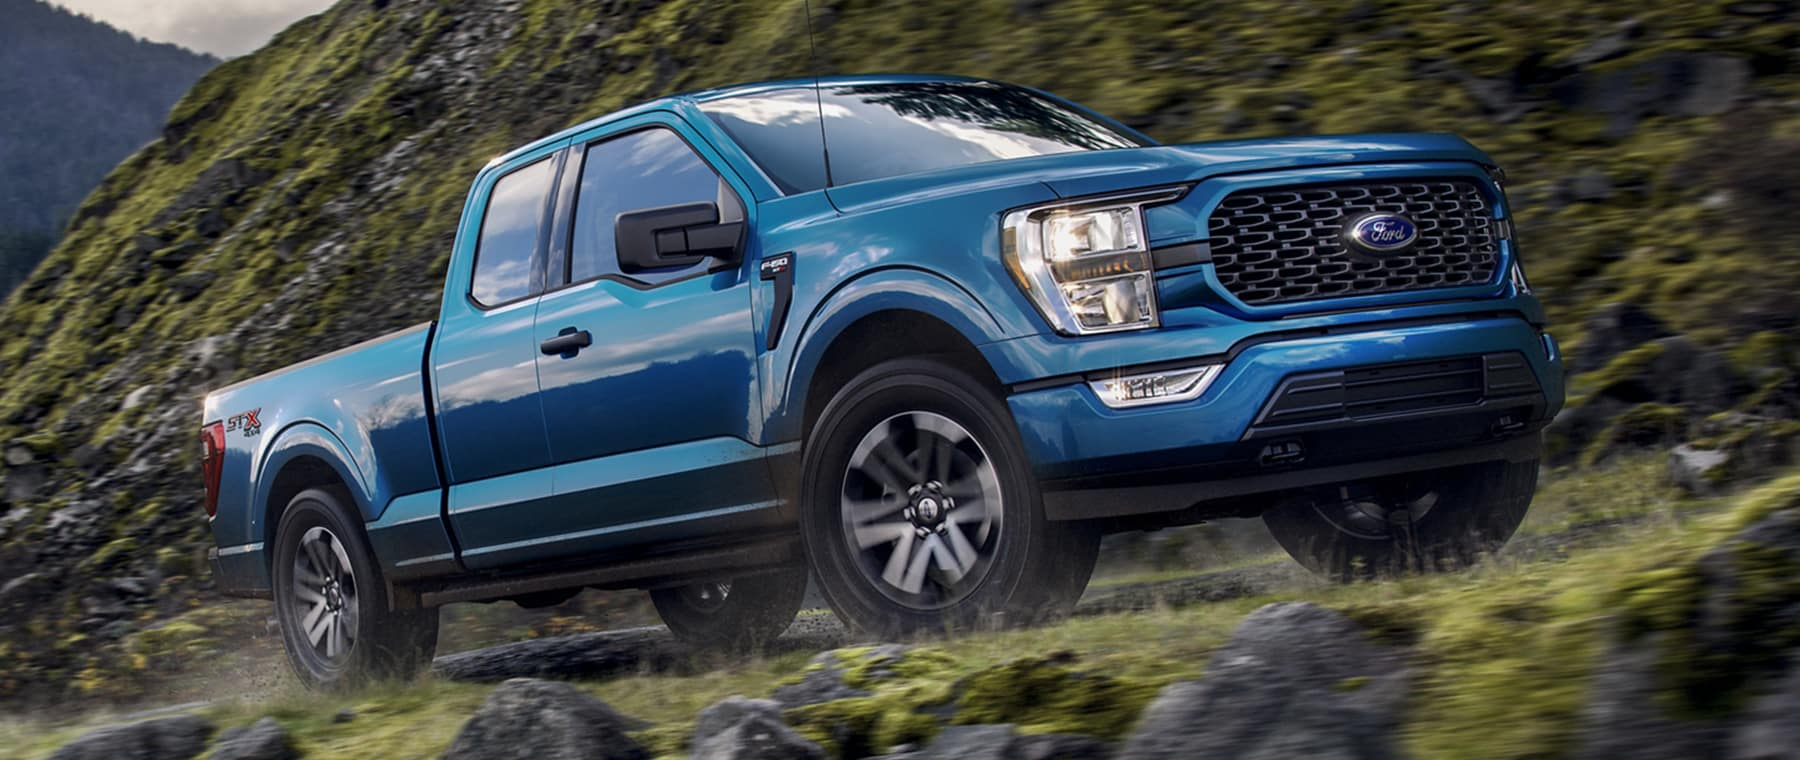 2021 Ford F150 on side of hill